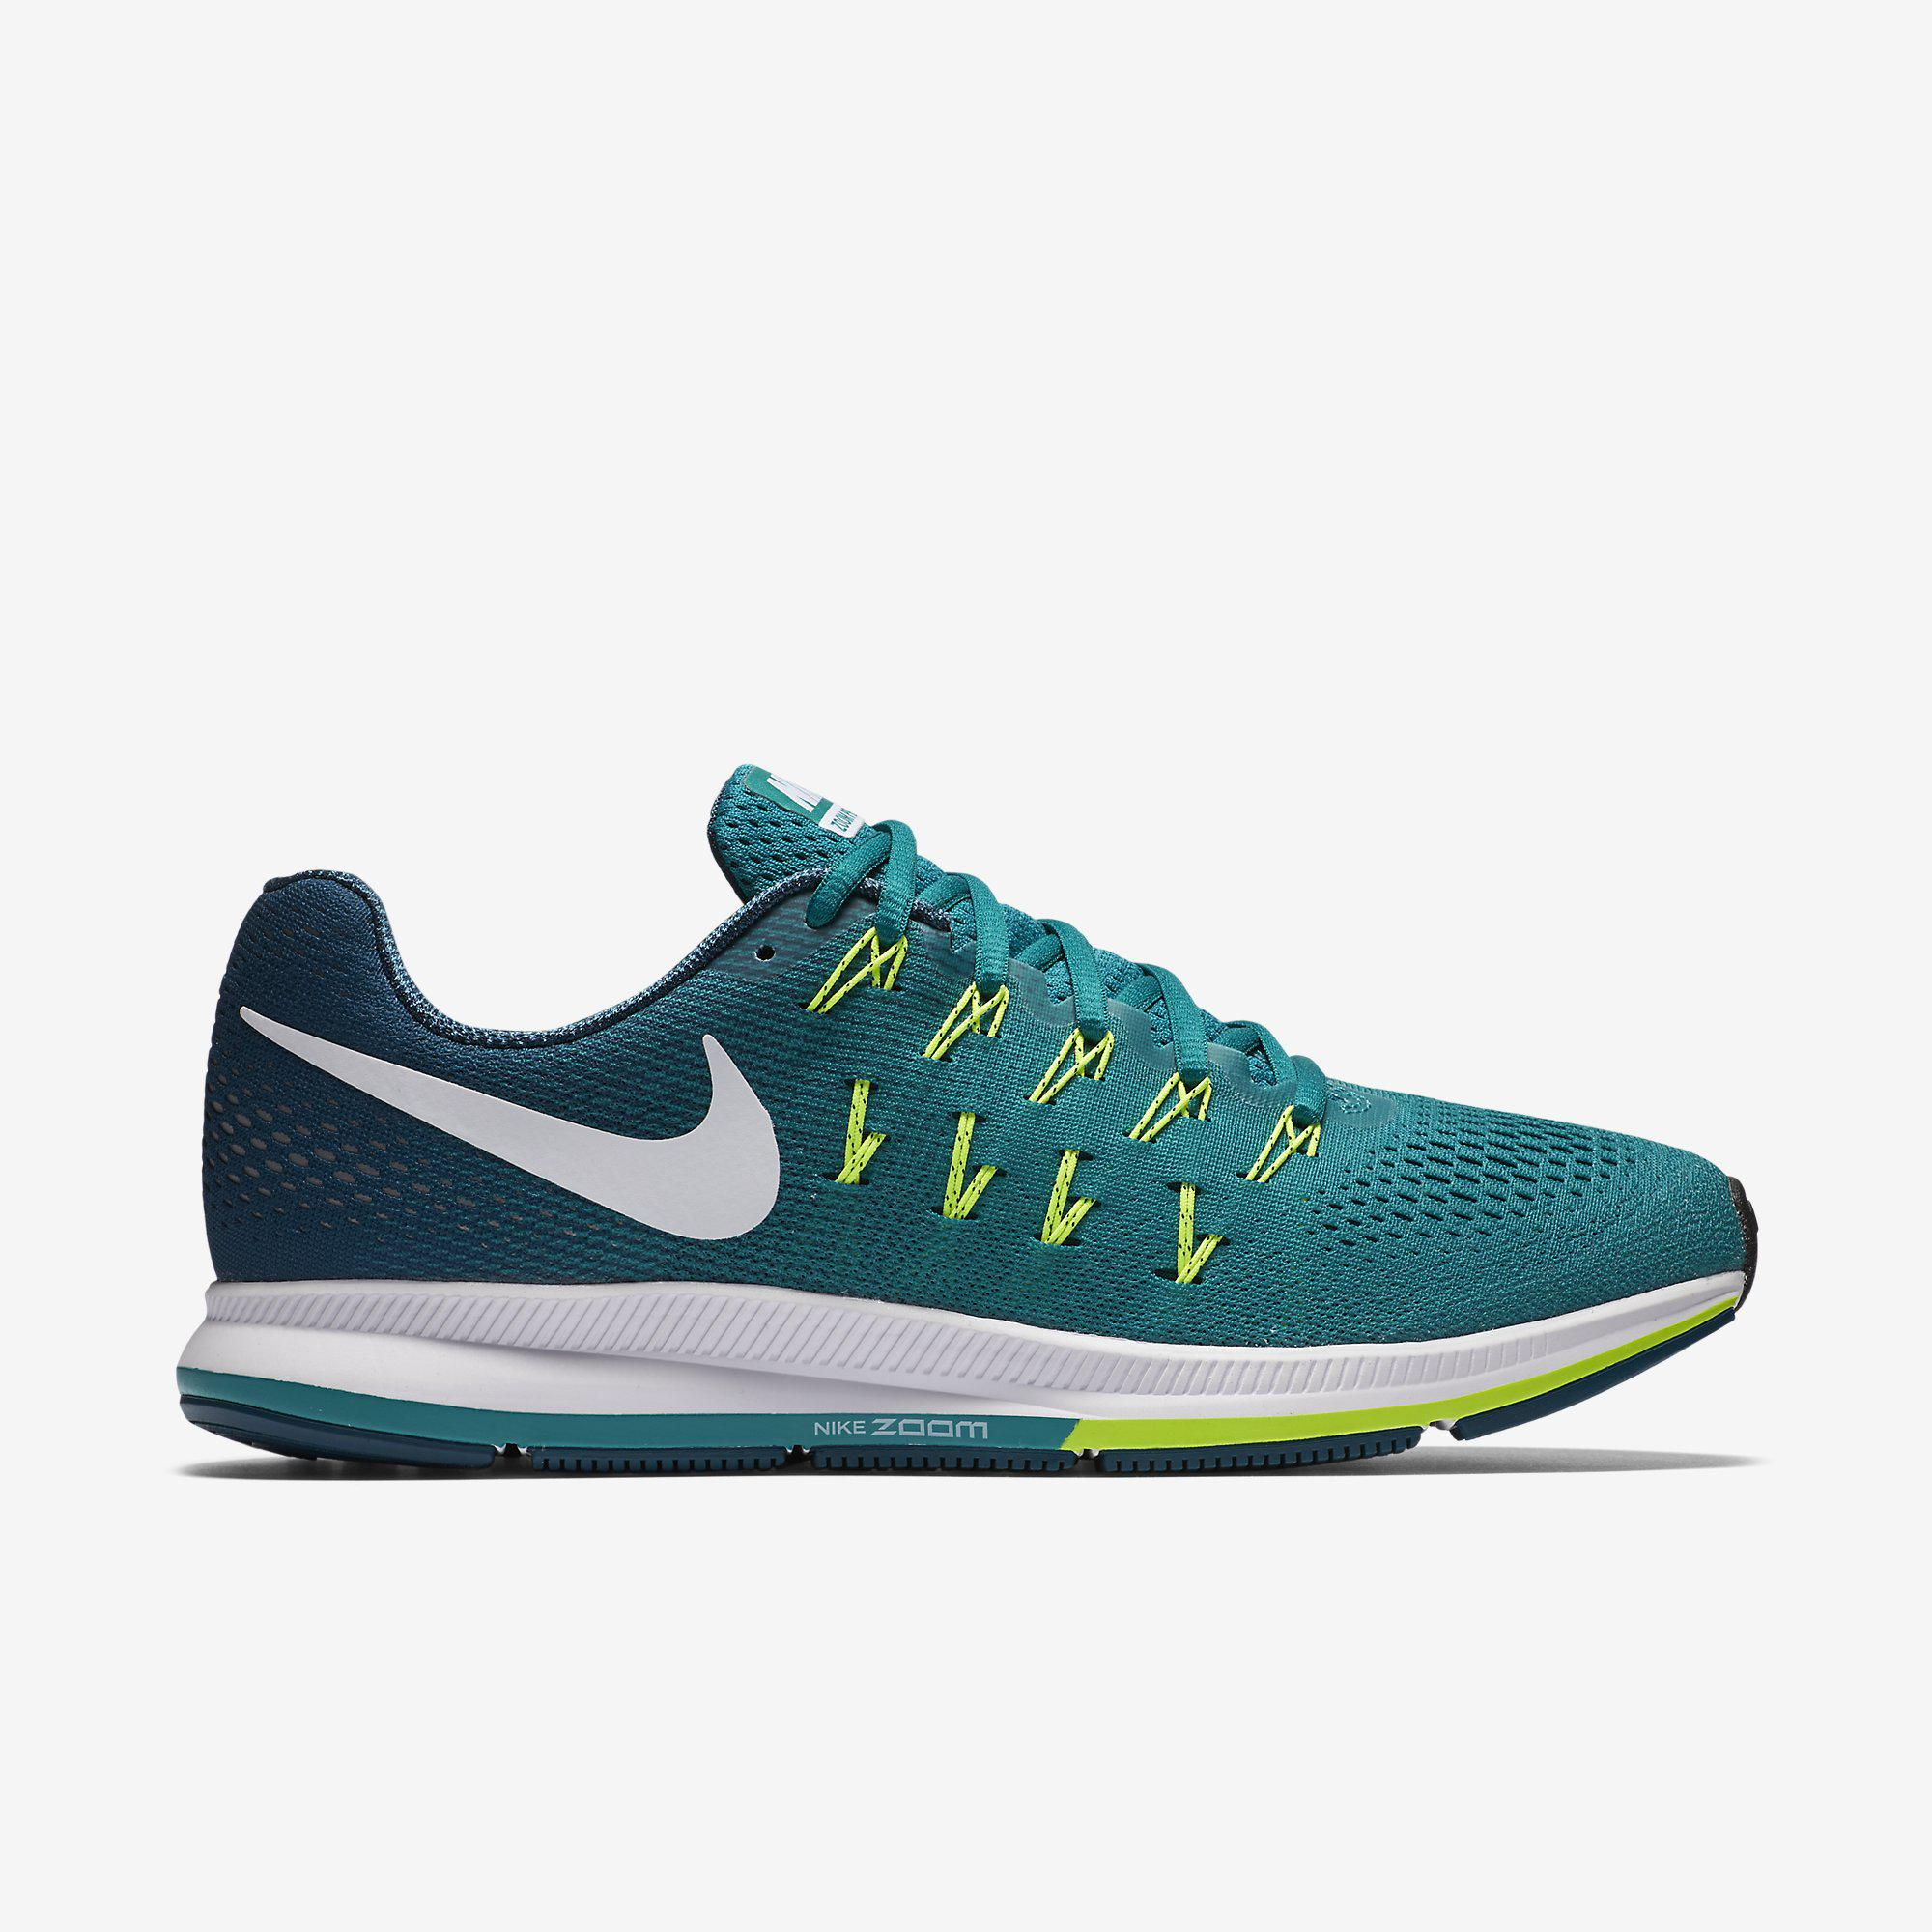 new style 2751a abddc Nike Mens Air Zoom Pegasus 33 Running Shoes - Rio TealMidnight Turquoise -  Tennisnuts.com